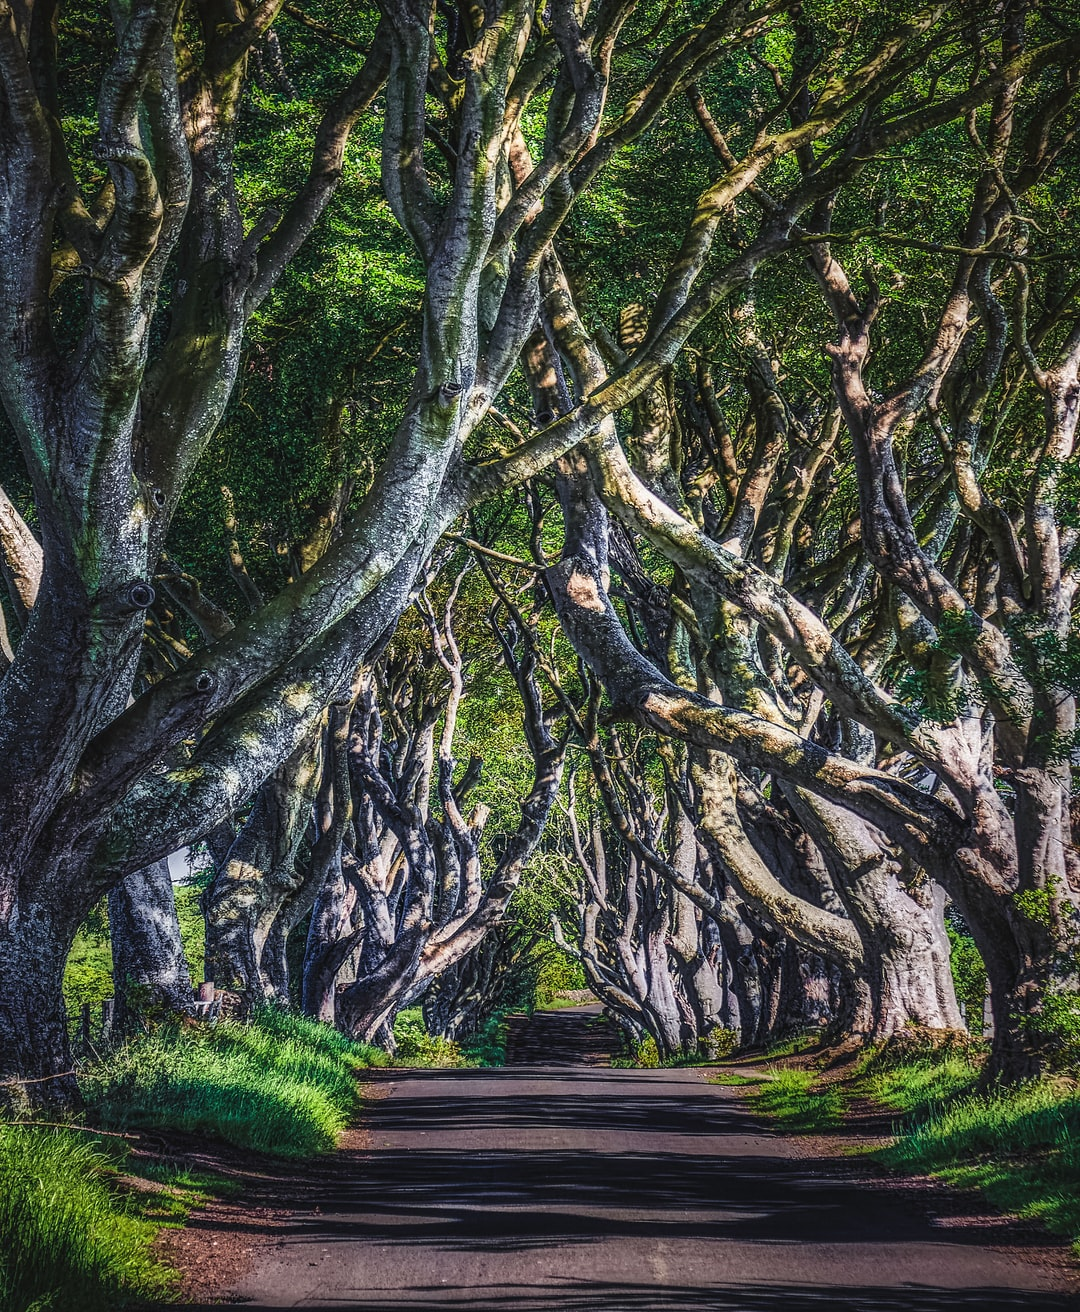 The Dark Hedges, famous as the King's Road from Game of Thrones, and also appearing in the movie, Transformers: The Last Knight (Jun., 2020).